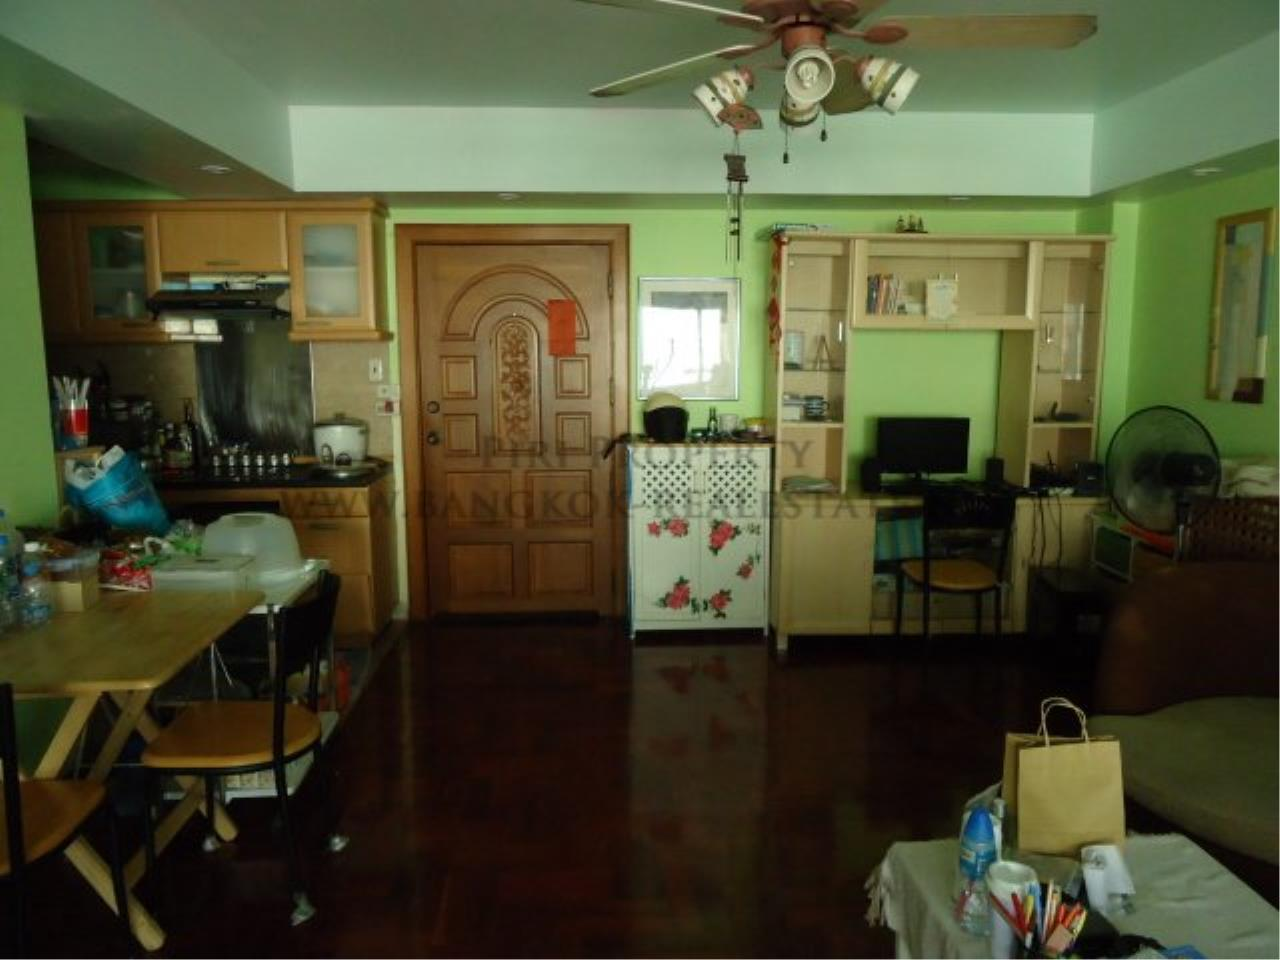 Piri Property Agency's Baan Sukhuthai - Spacious 1 Bed Condo for Rent - 65 SQM 2